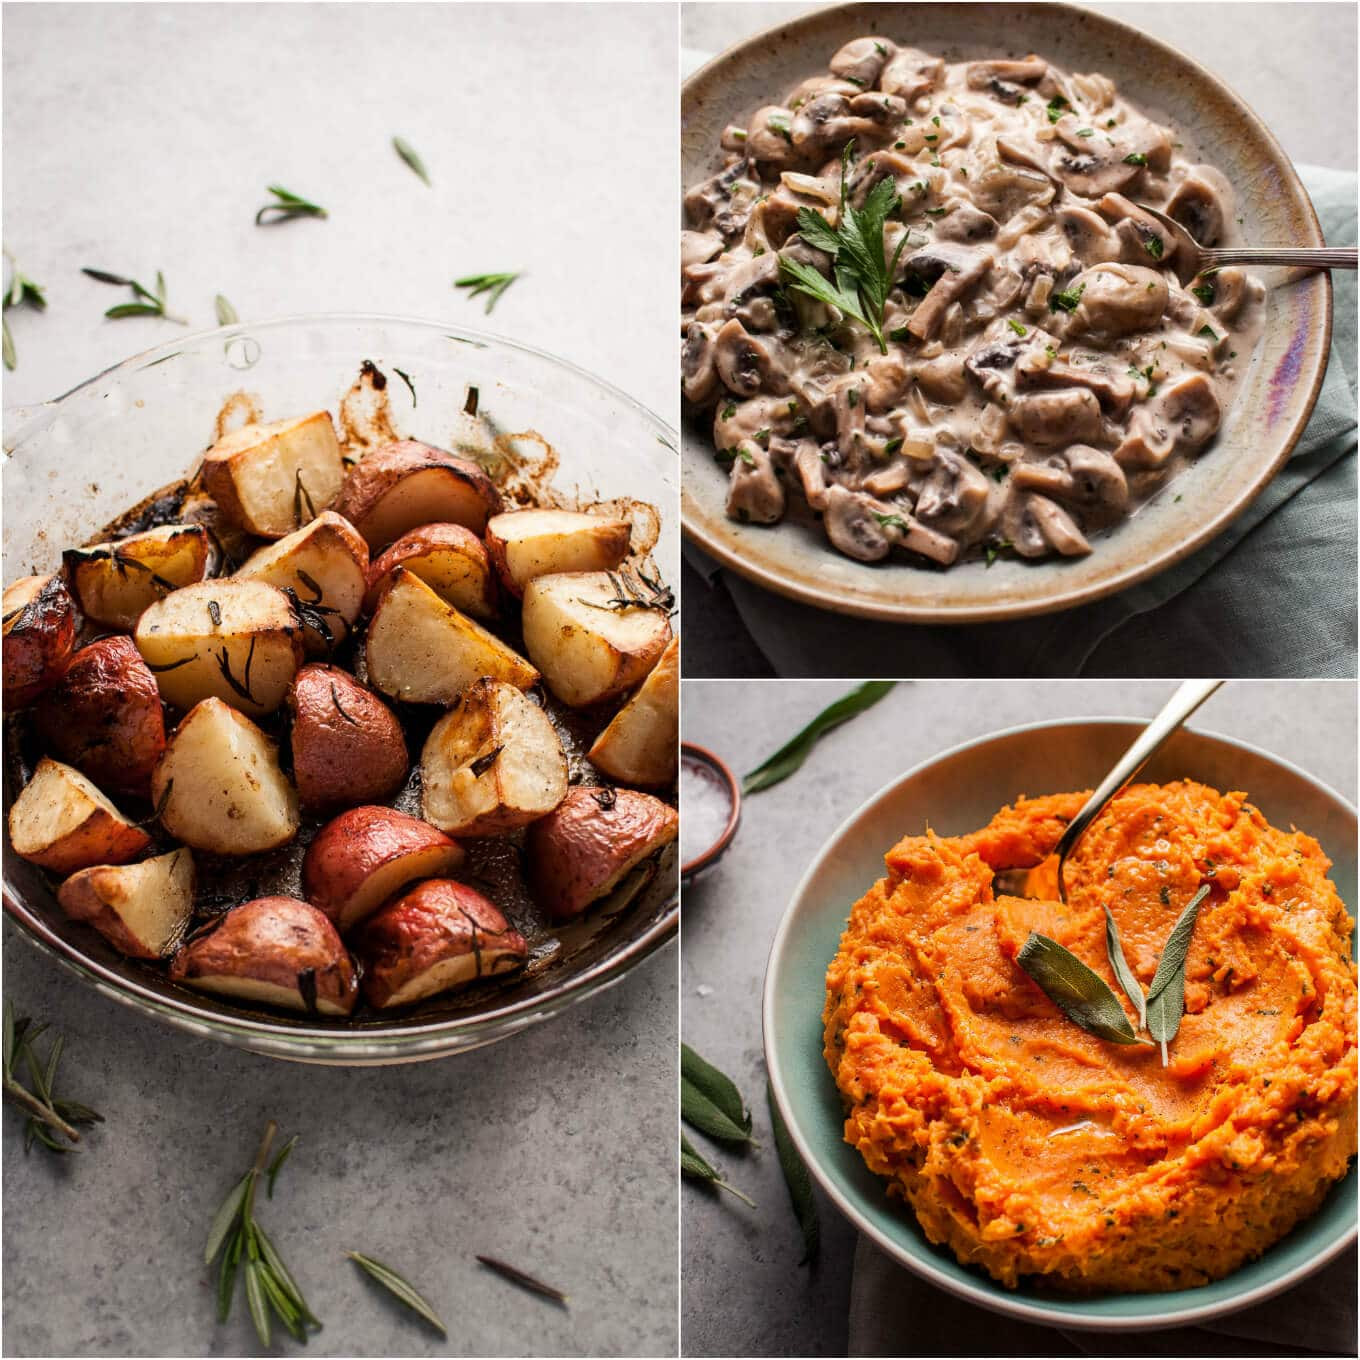 Vegetarian Side Dishes For Thanksgiving  3 Easy Ve arian Thanksgiving Side Dishes • Salt & Lavender